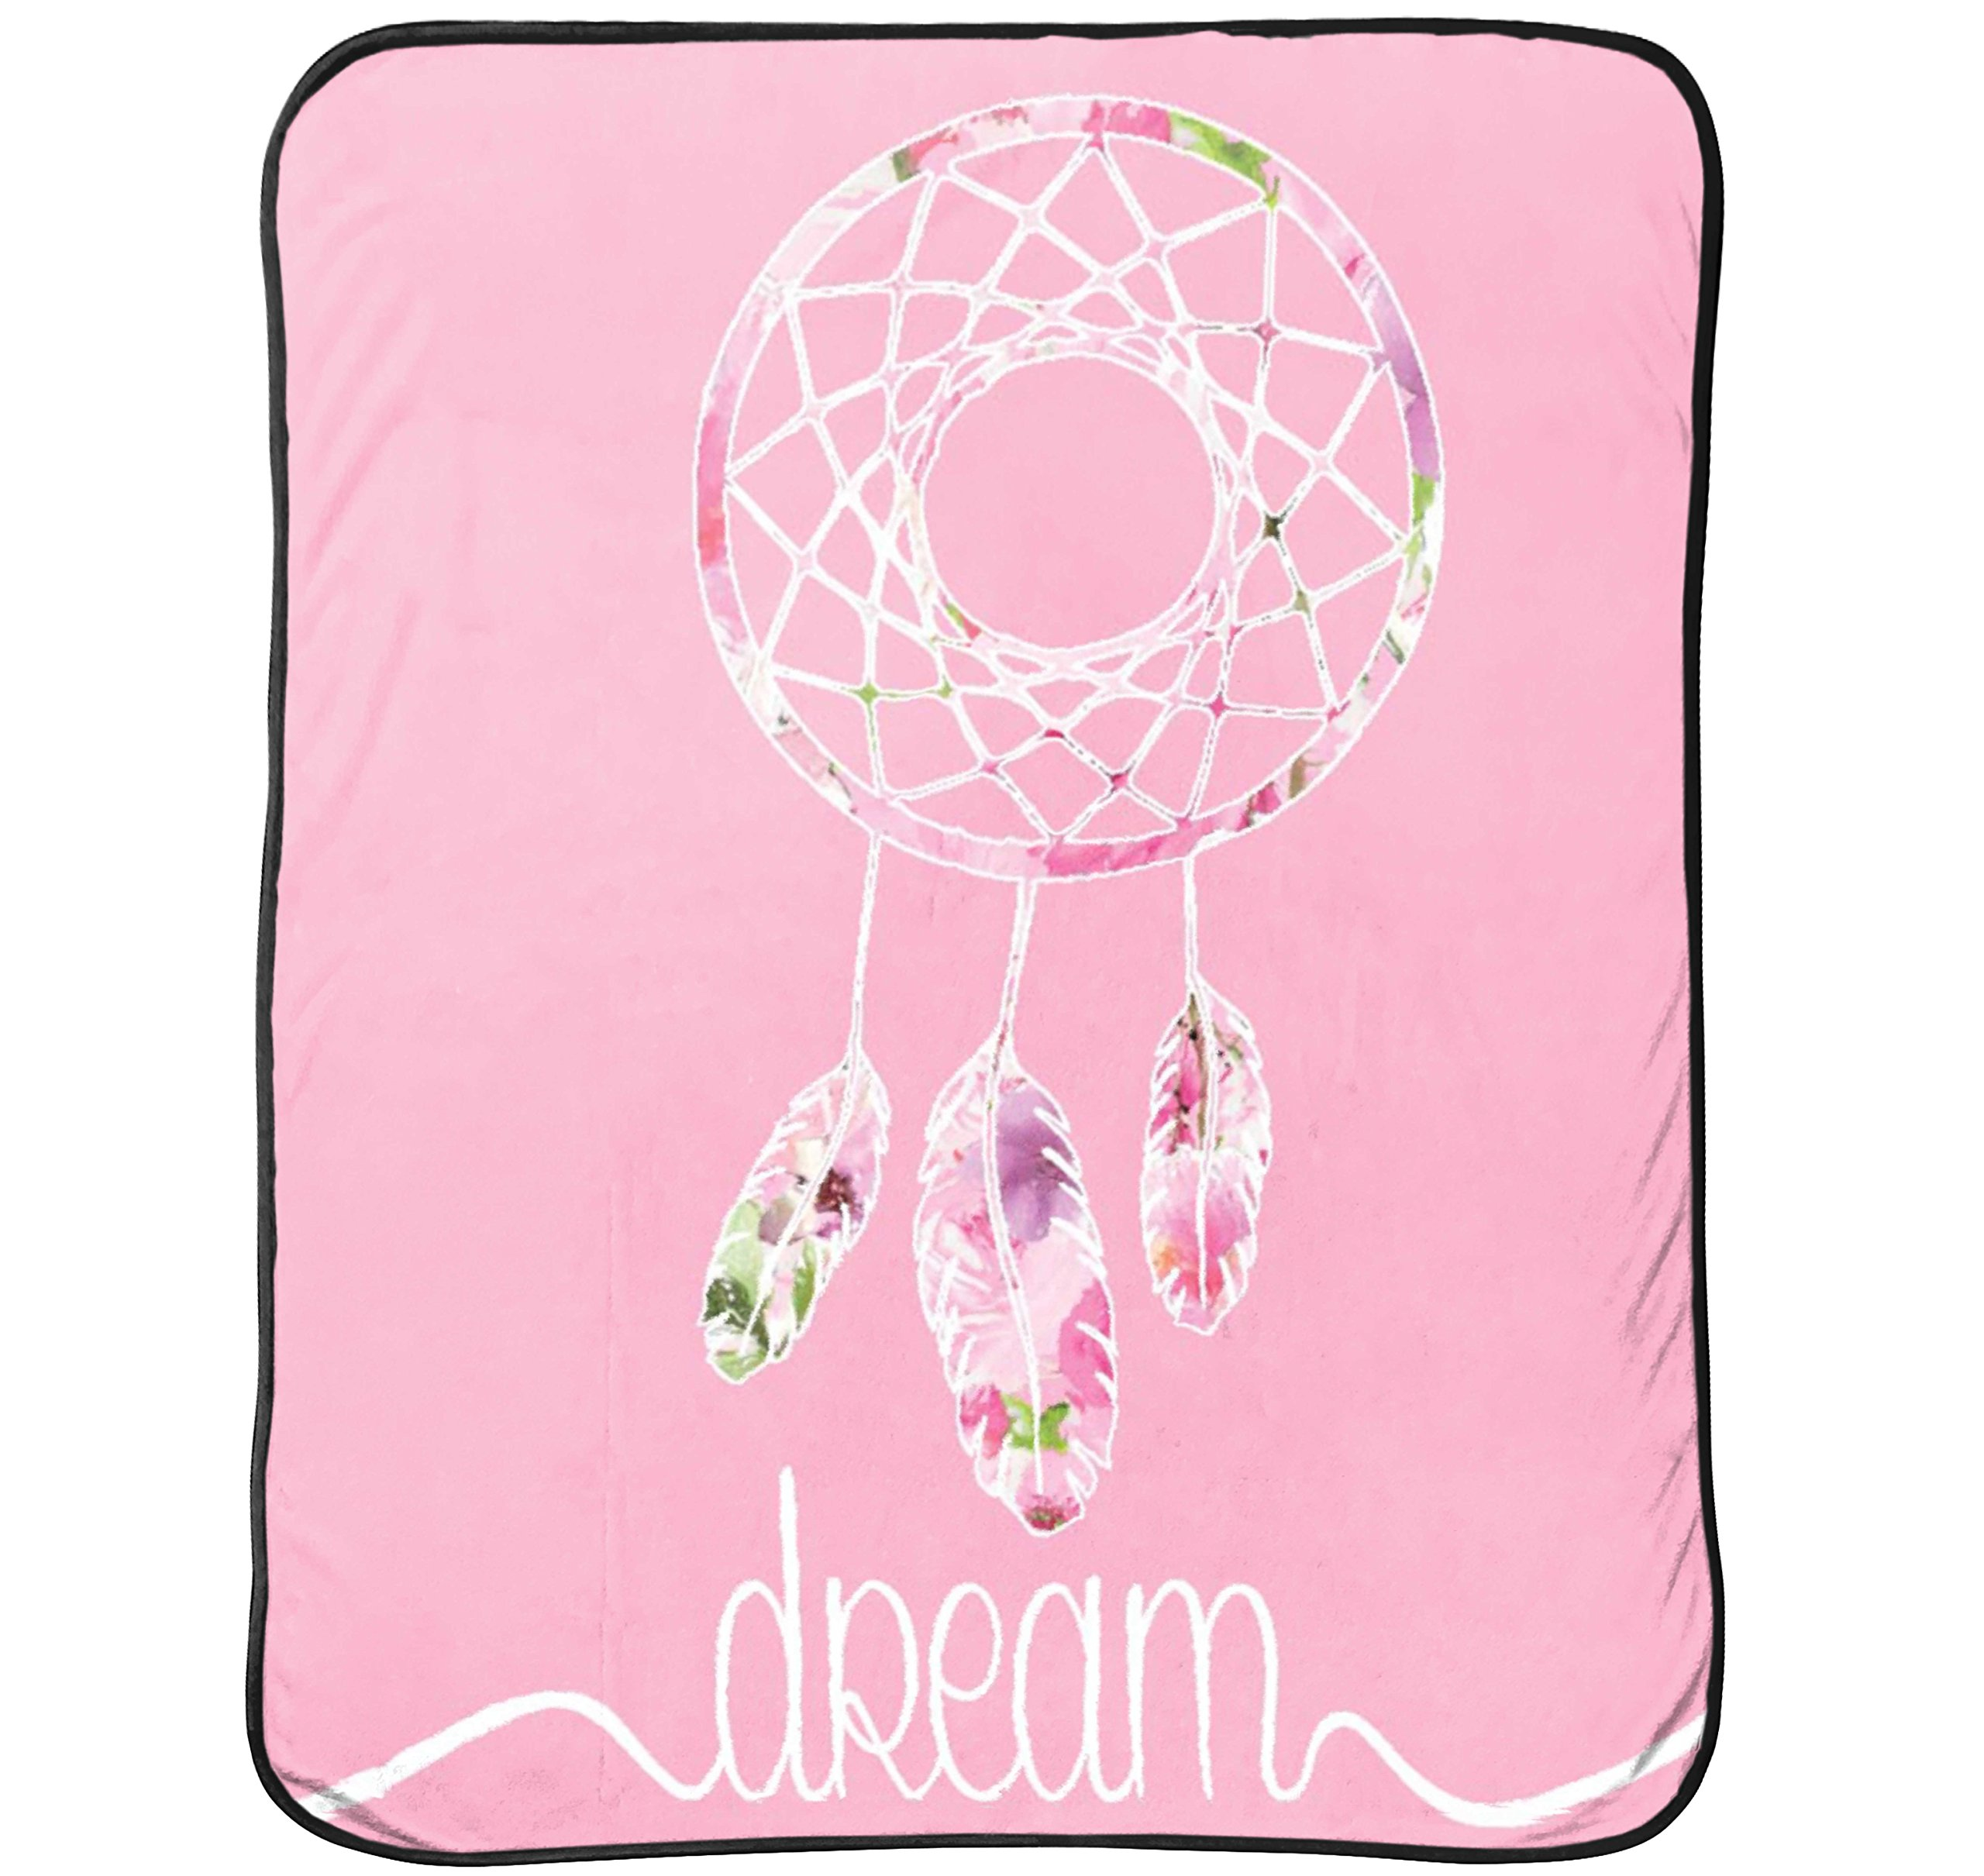 Limited Too 'Dream Catcher' Silk Touch 50'' x 60'' Throw Blanket by Jay Franco